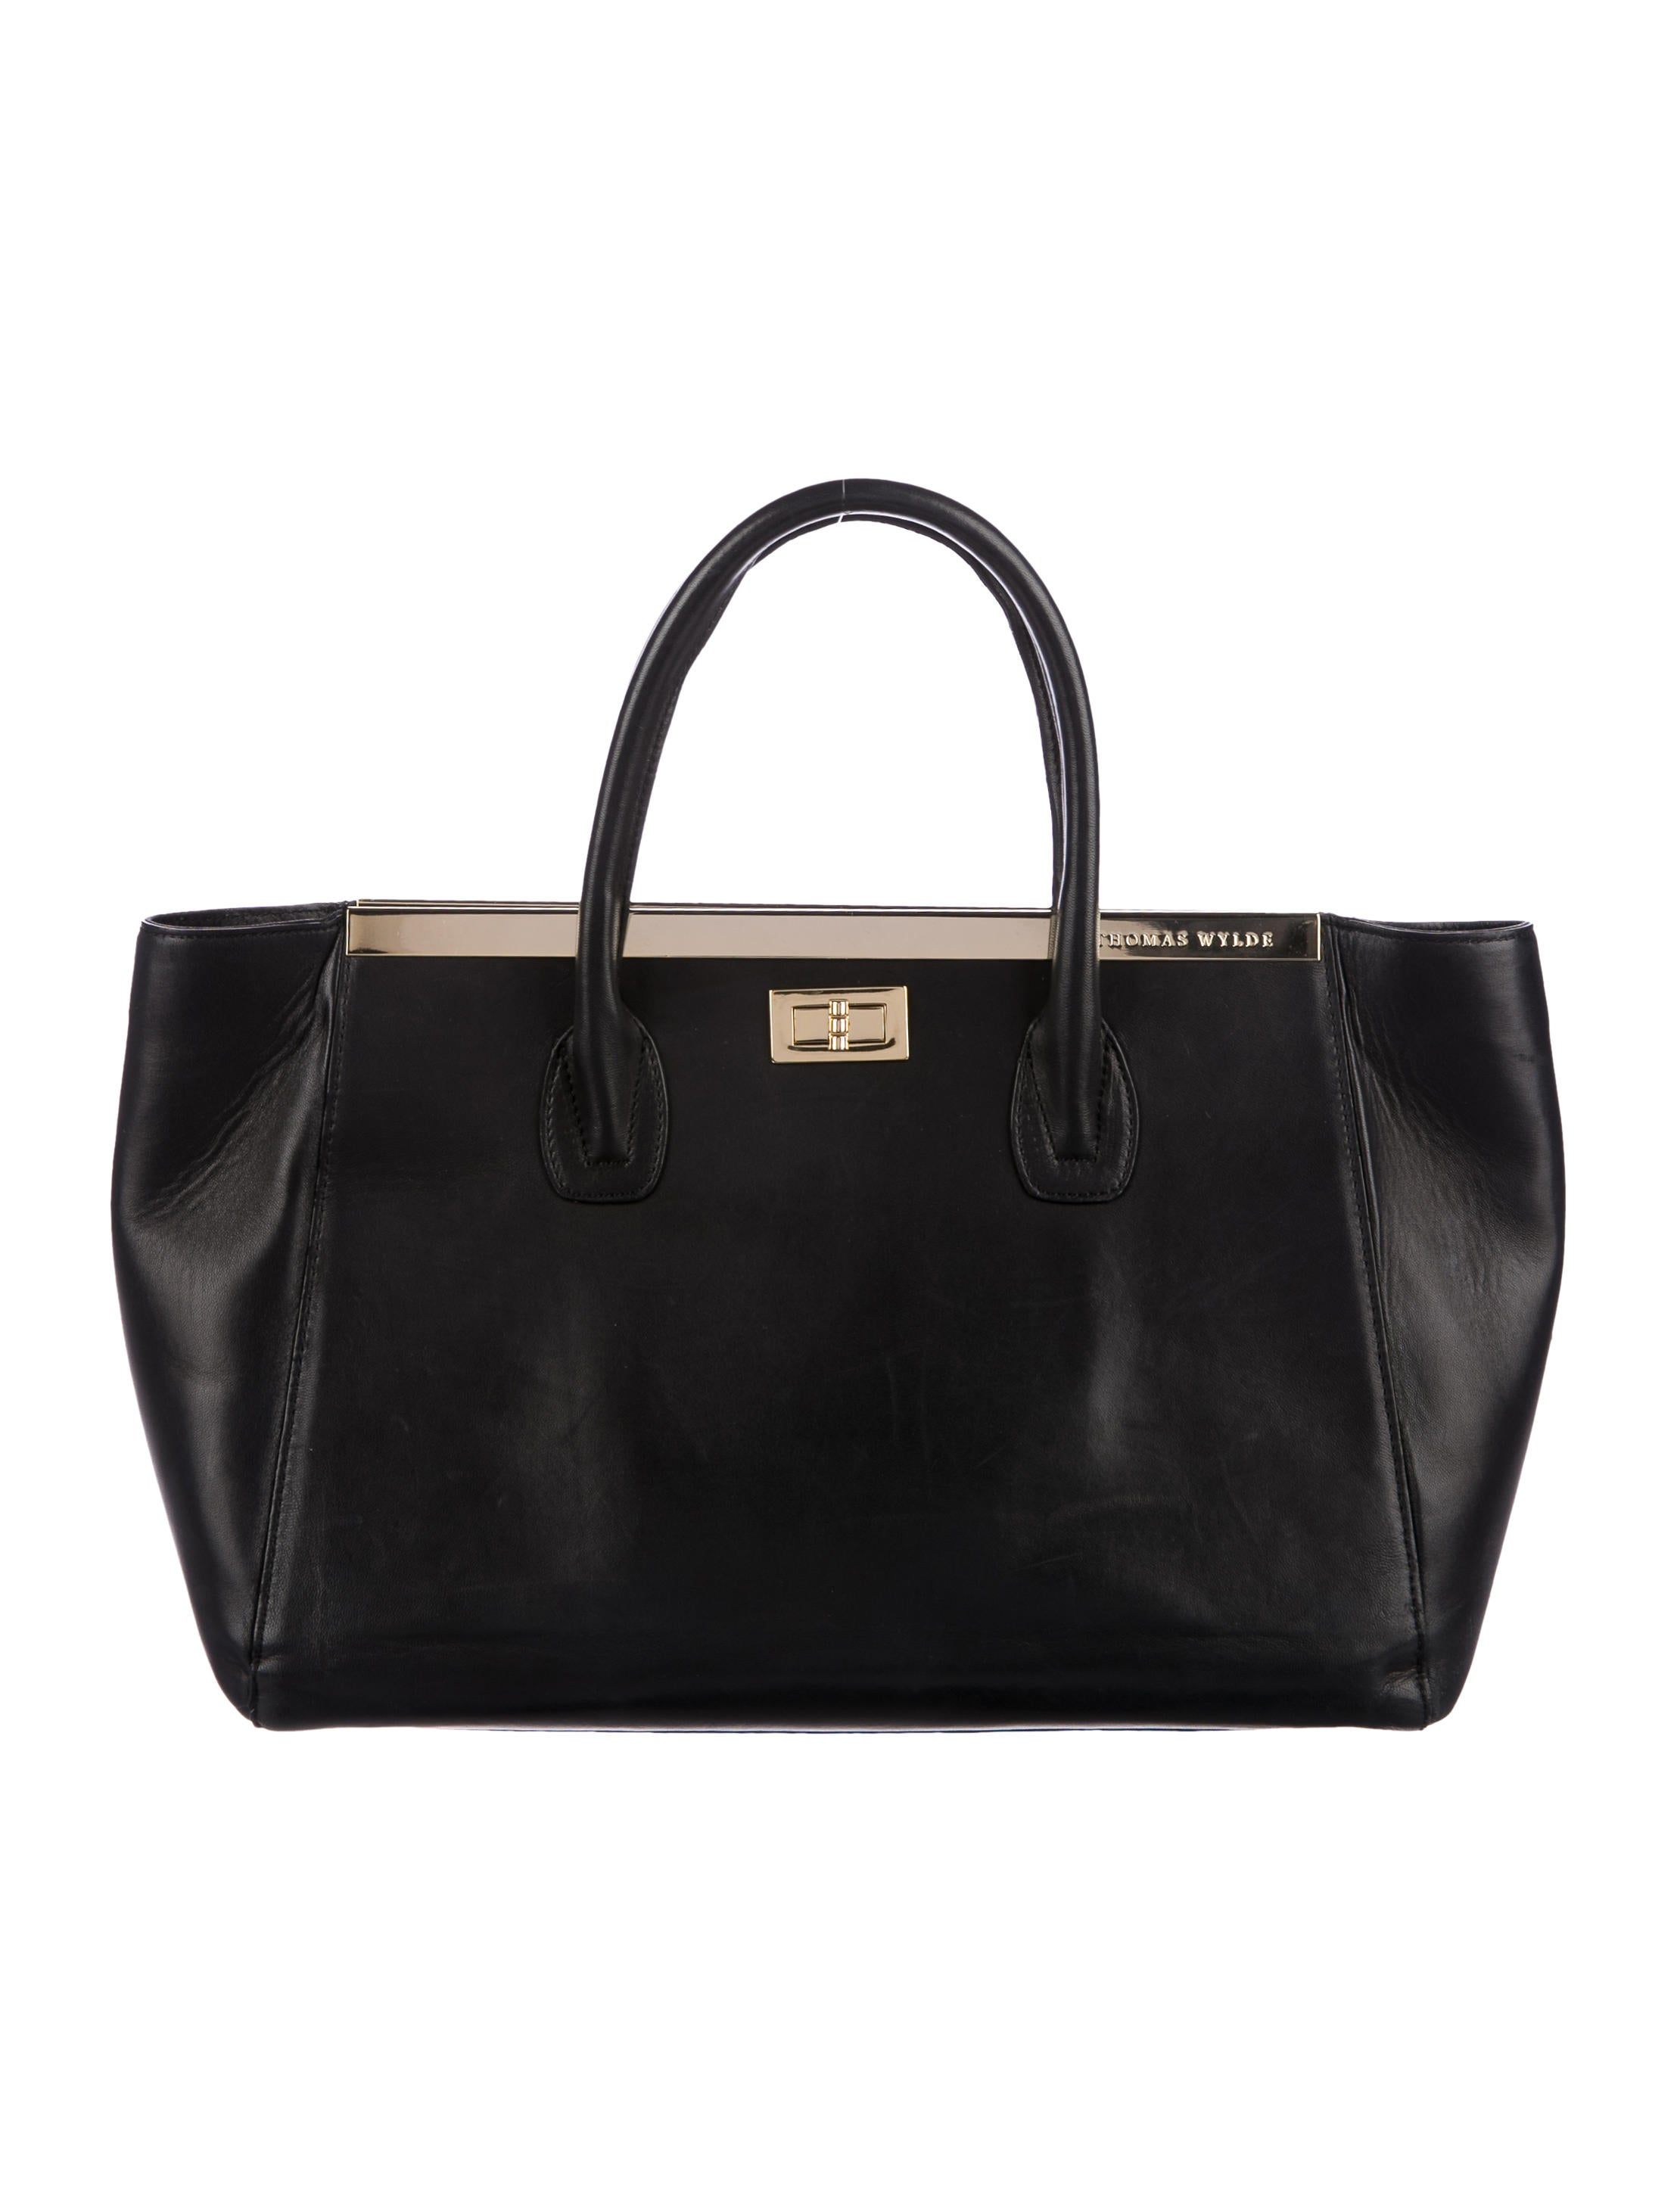 Thomas Wylde Smooth Leather Tote